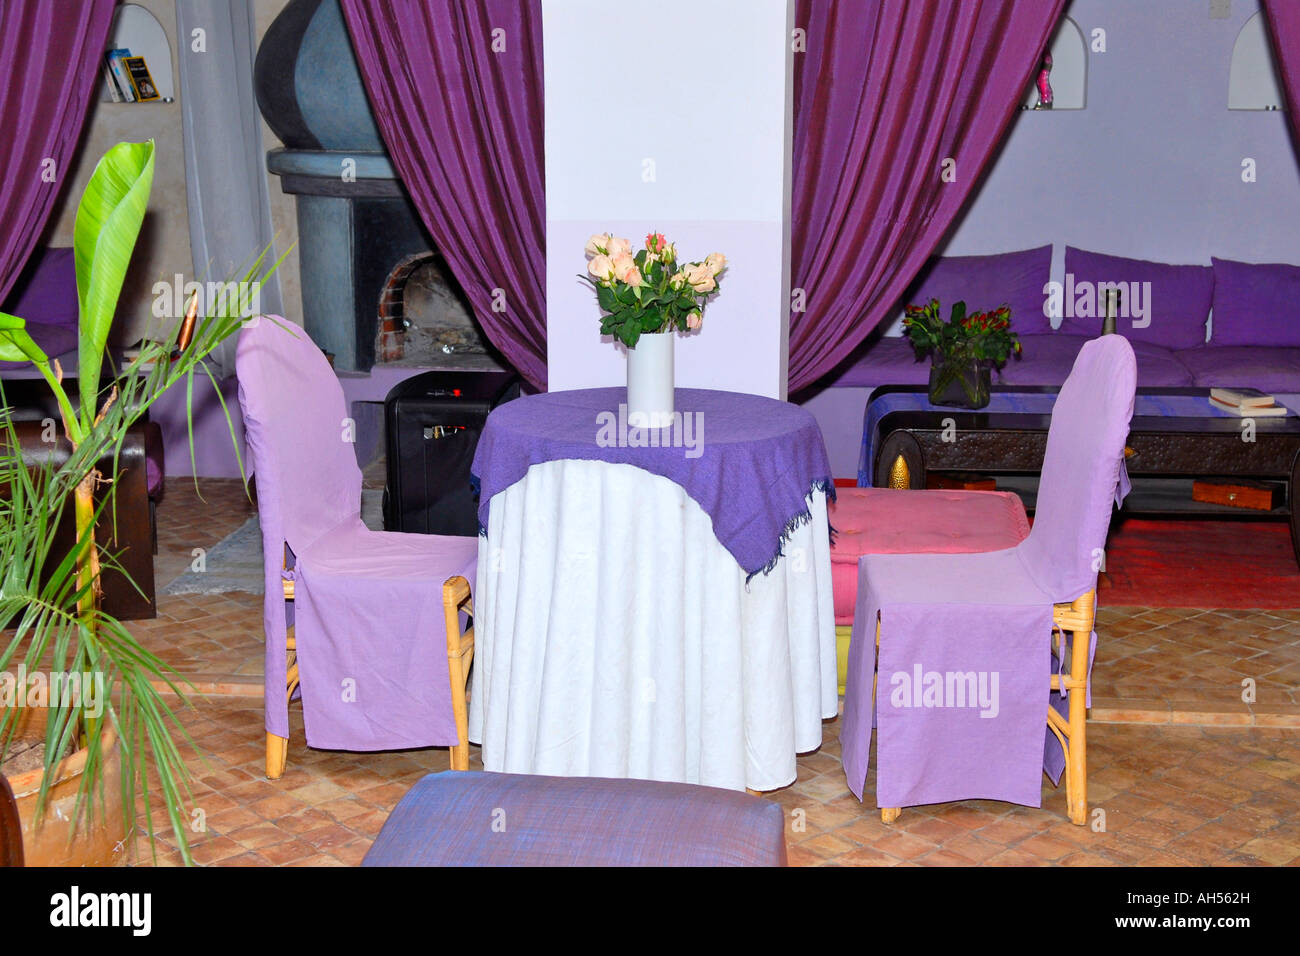 Morocco , Essaouira , Riad El Madina hippy hotel , typical African courtyard with mauve lounge settees , drapes - Stock Image